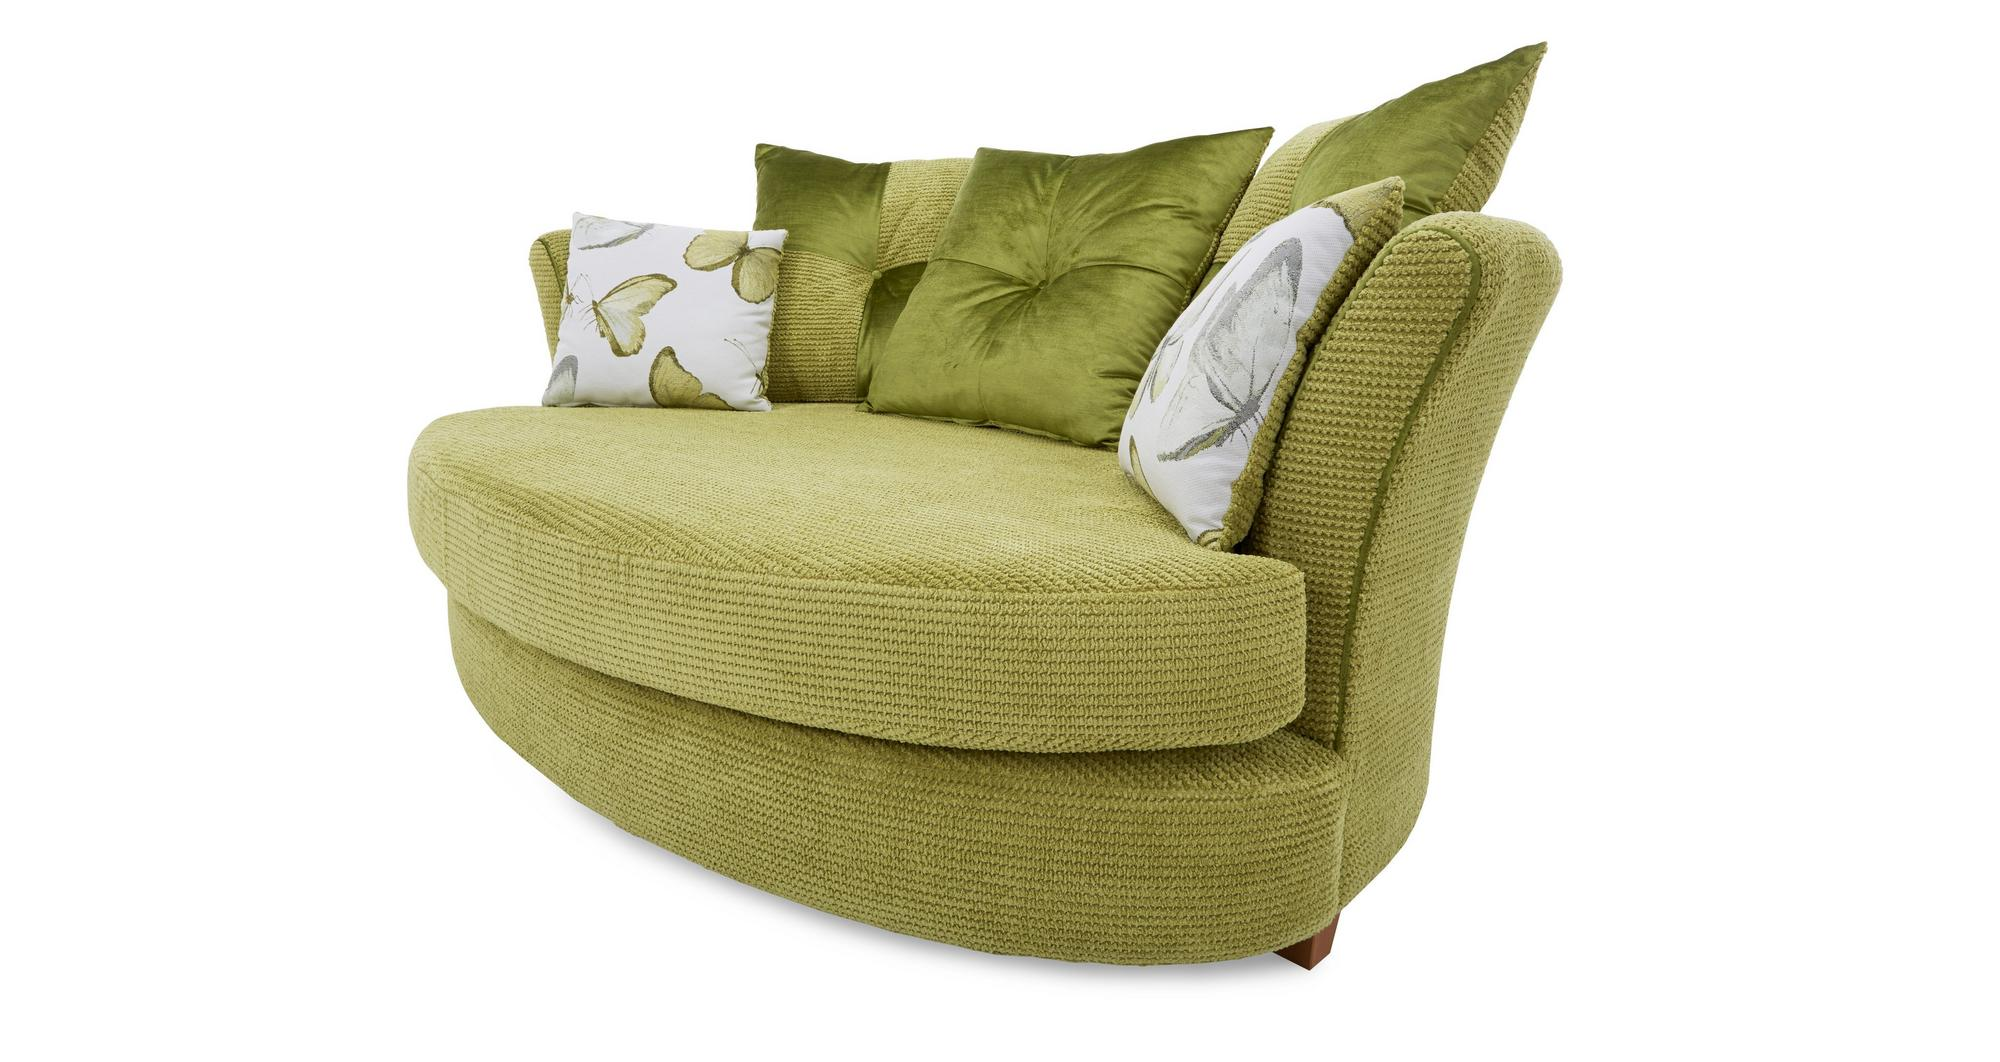 DFS Alegra Lime Green Fabric Cuddler Sofa & Patterned Accent Chair